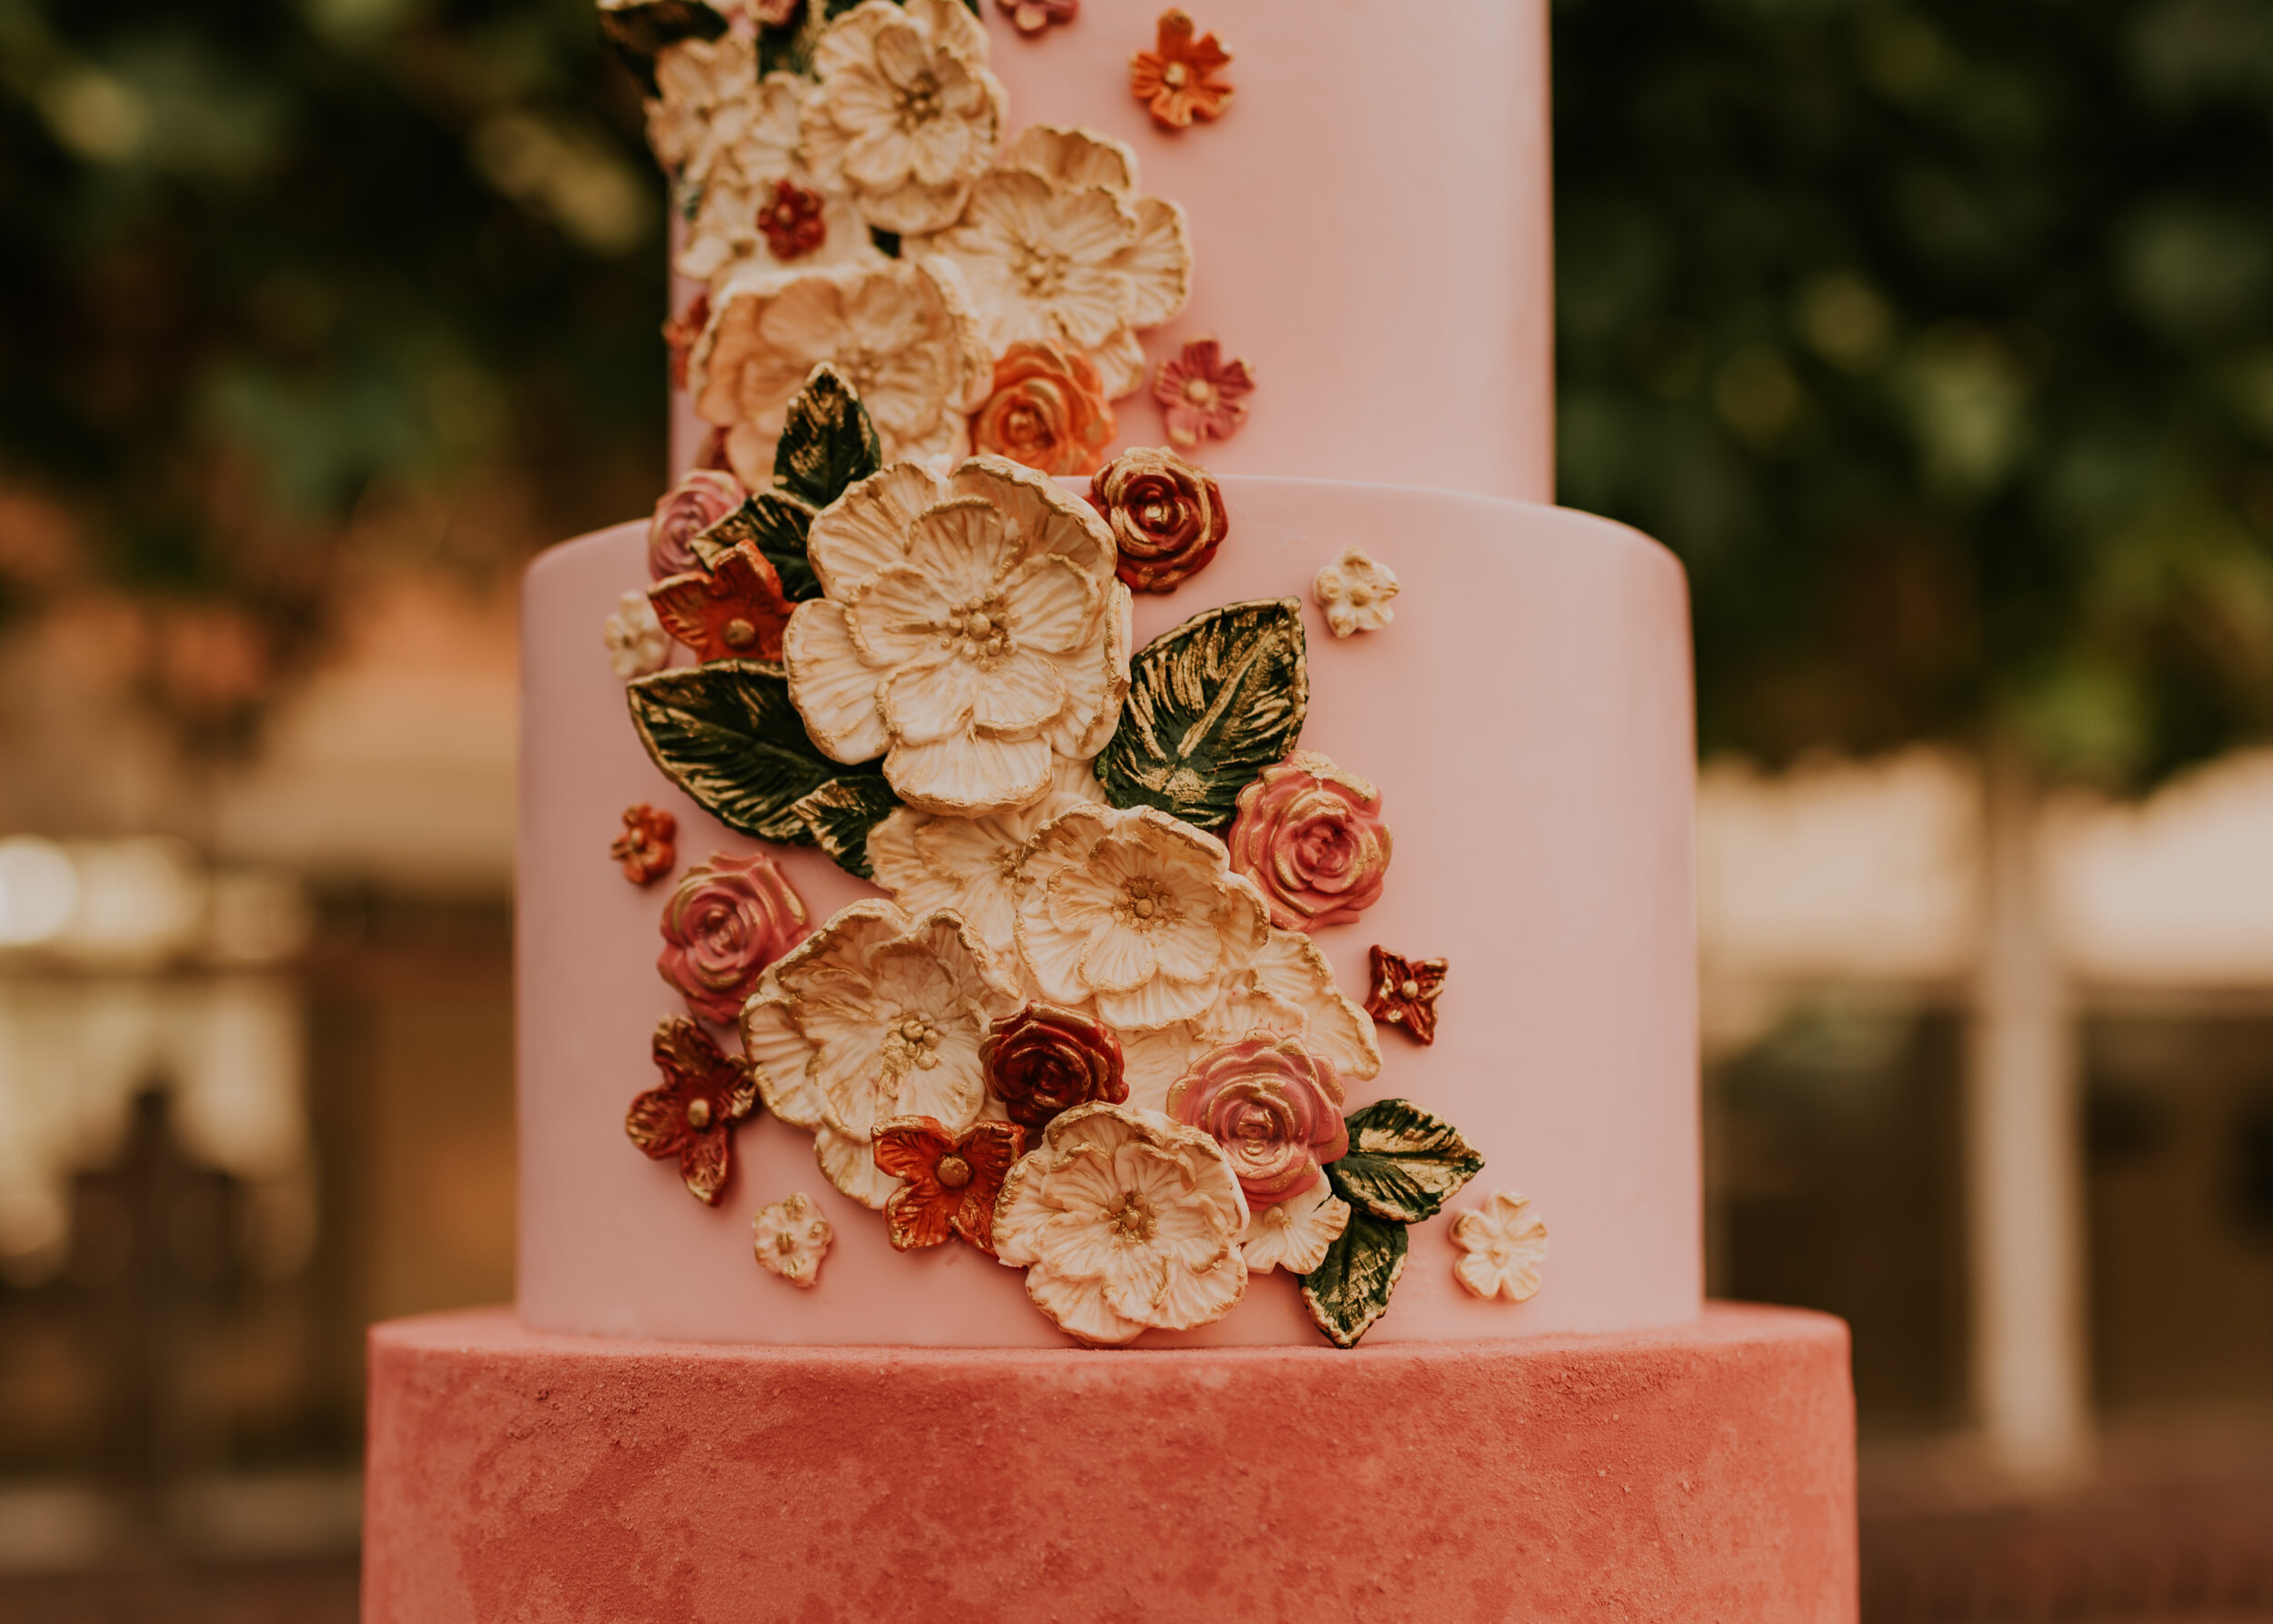 Blanc - Denver, Colorado Wedding Venue | Wedding Cake Inspo | Colorado Wedding Photography - Carrie Rogers Photography